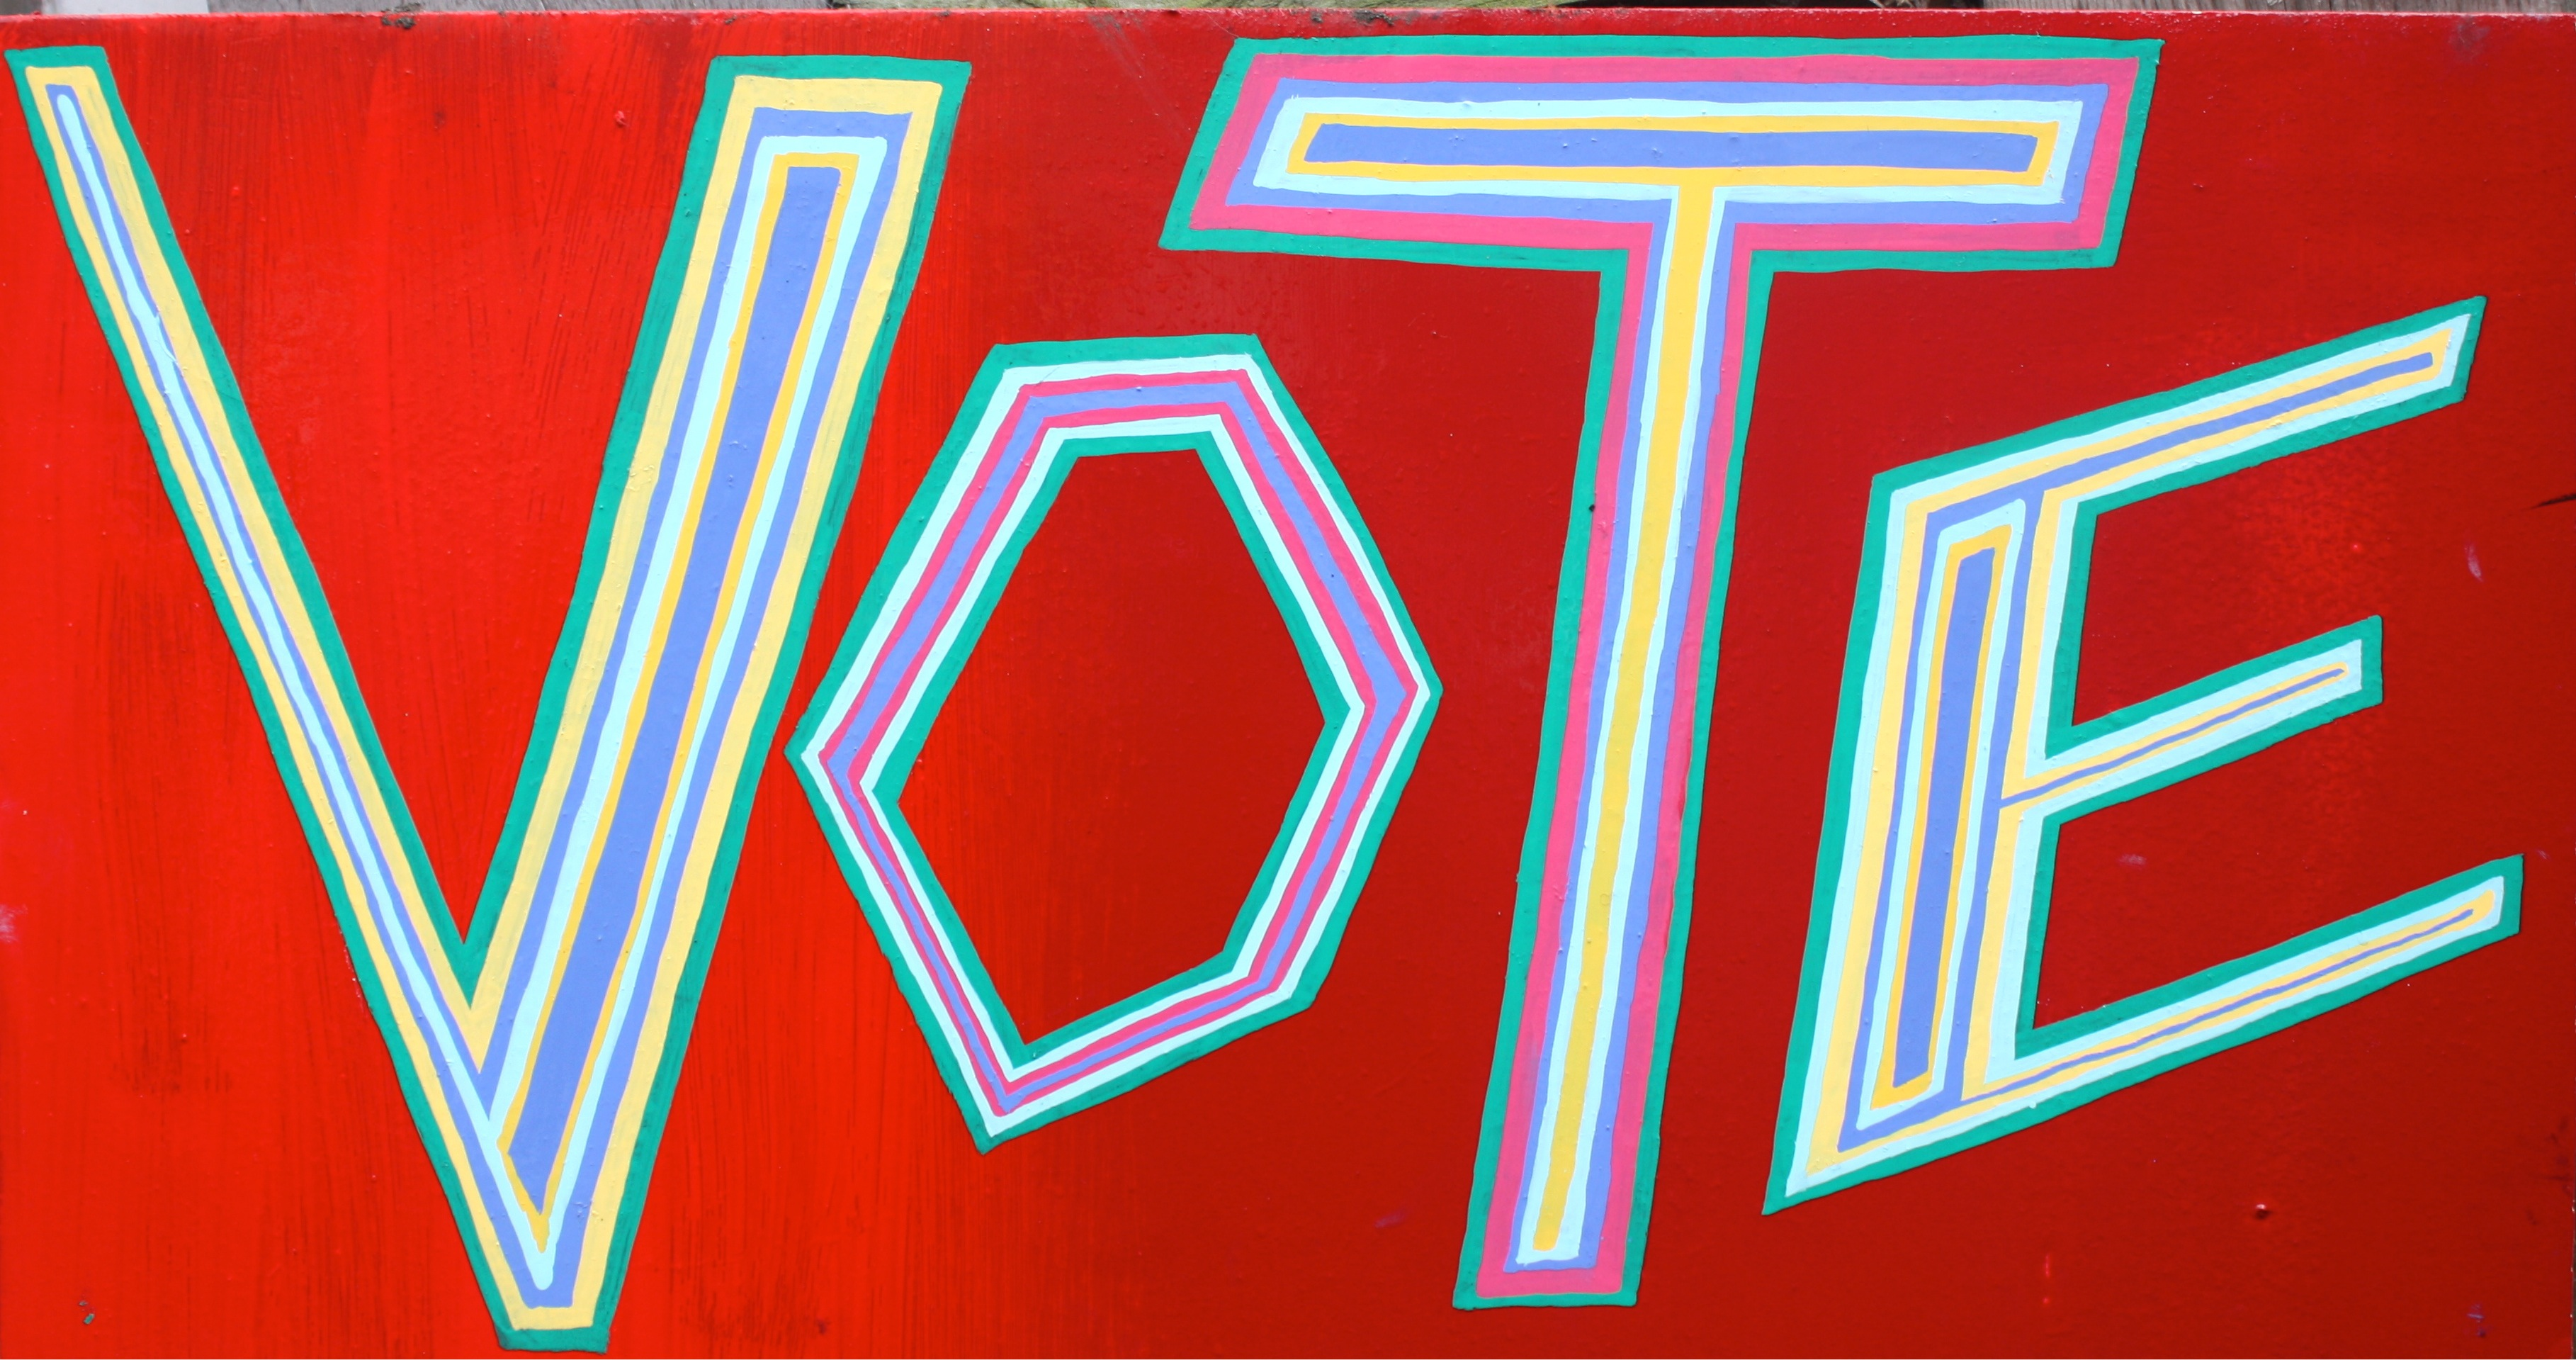 Vote by Bob & Roberta Smith